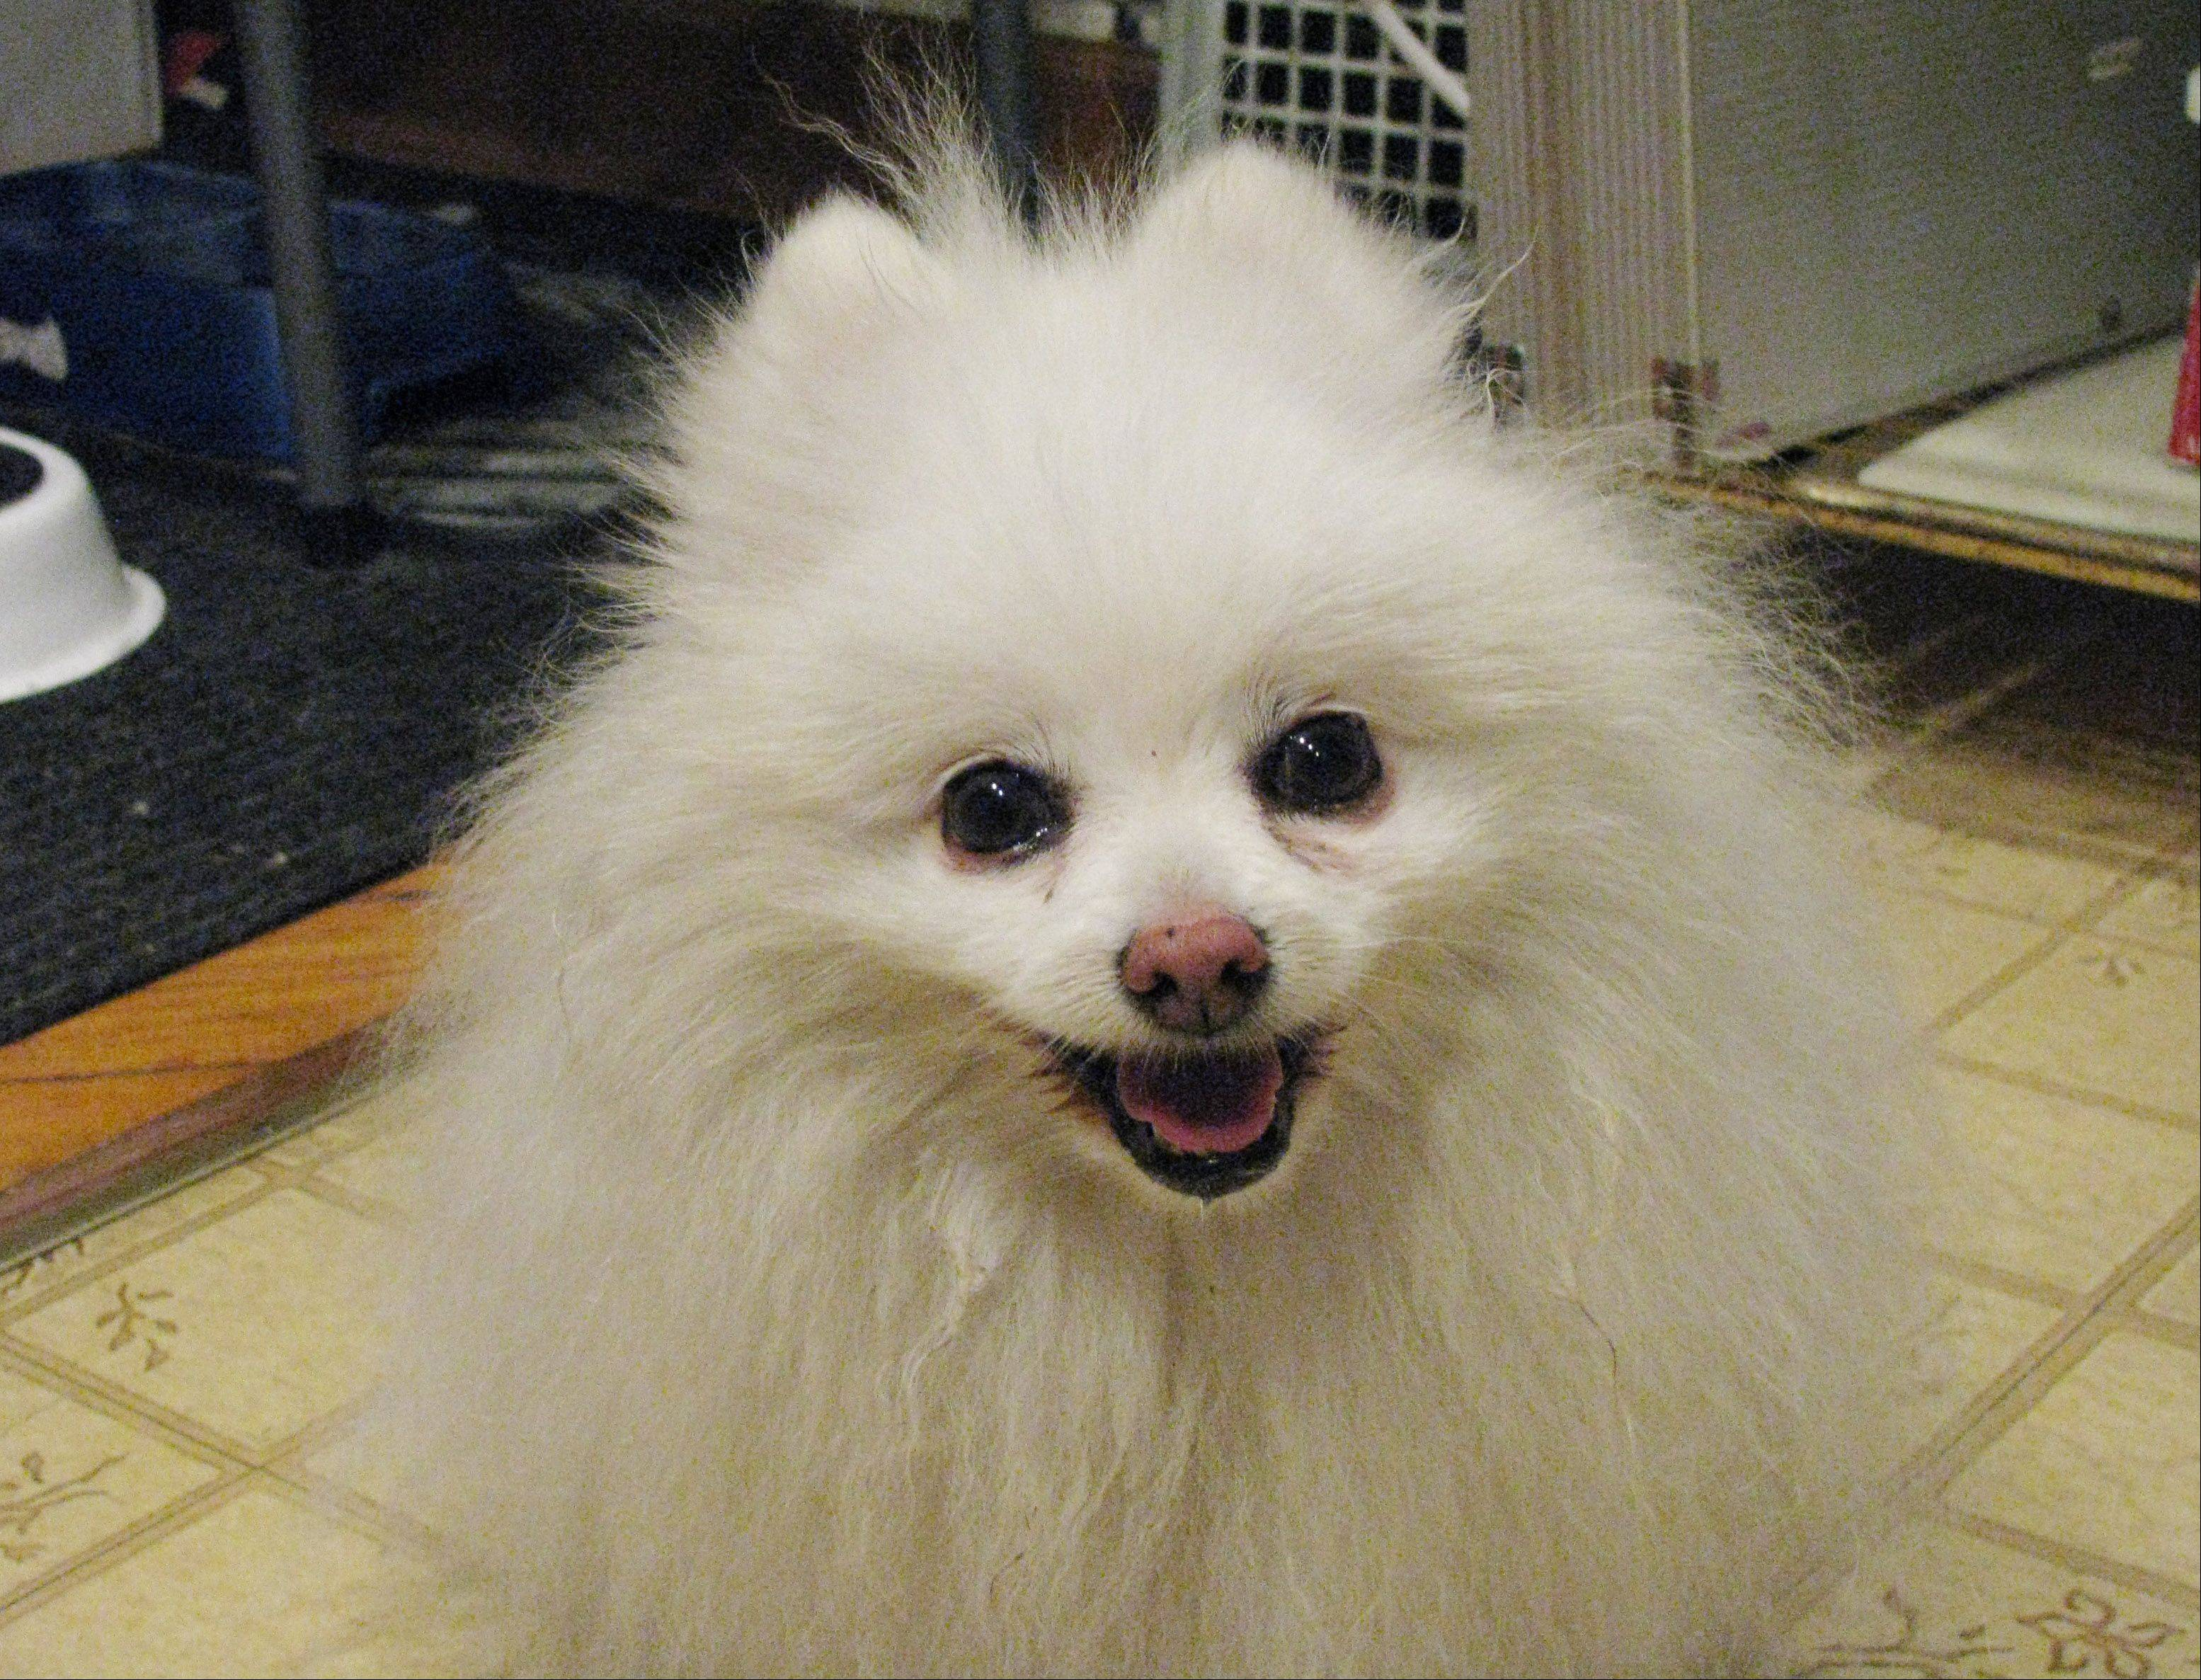 Gracie the Pomeranian was stolen June 9 but recovered June 22. Police say the dog is valued at $500 and the men planned to sell her to buy cocaine.